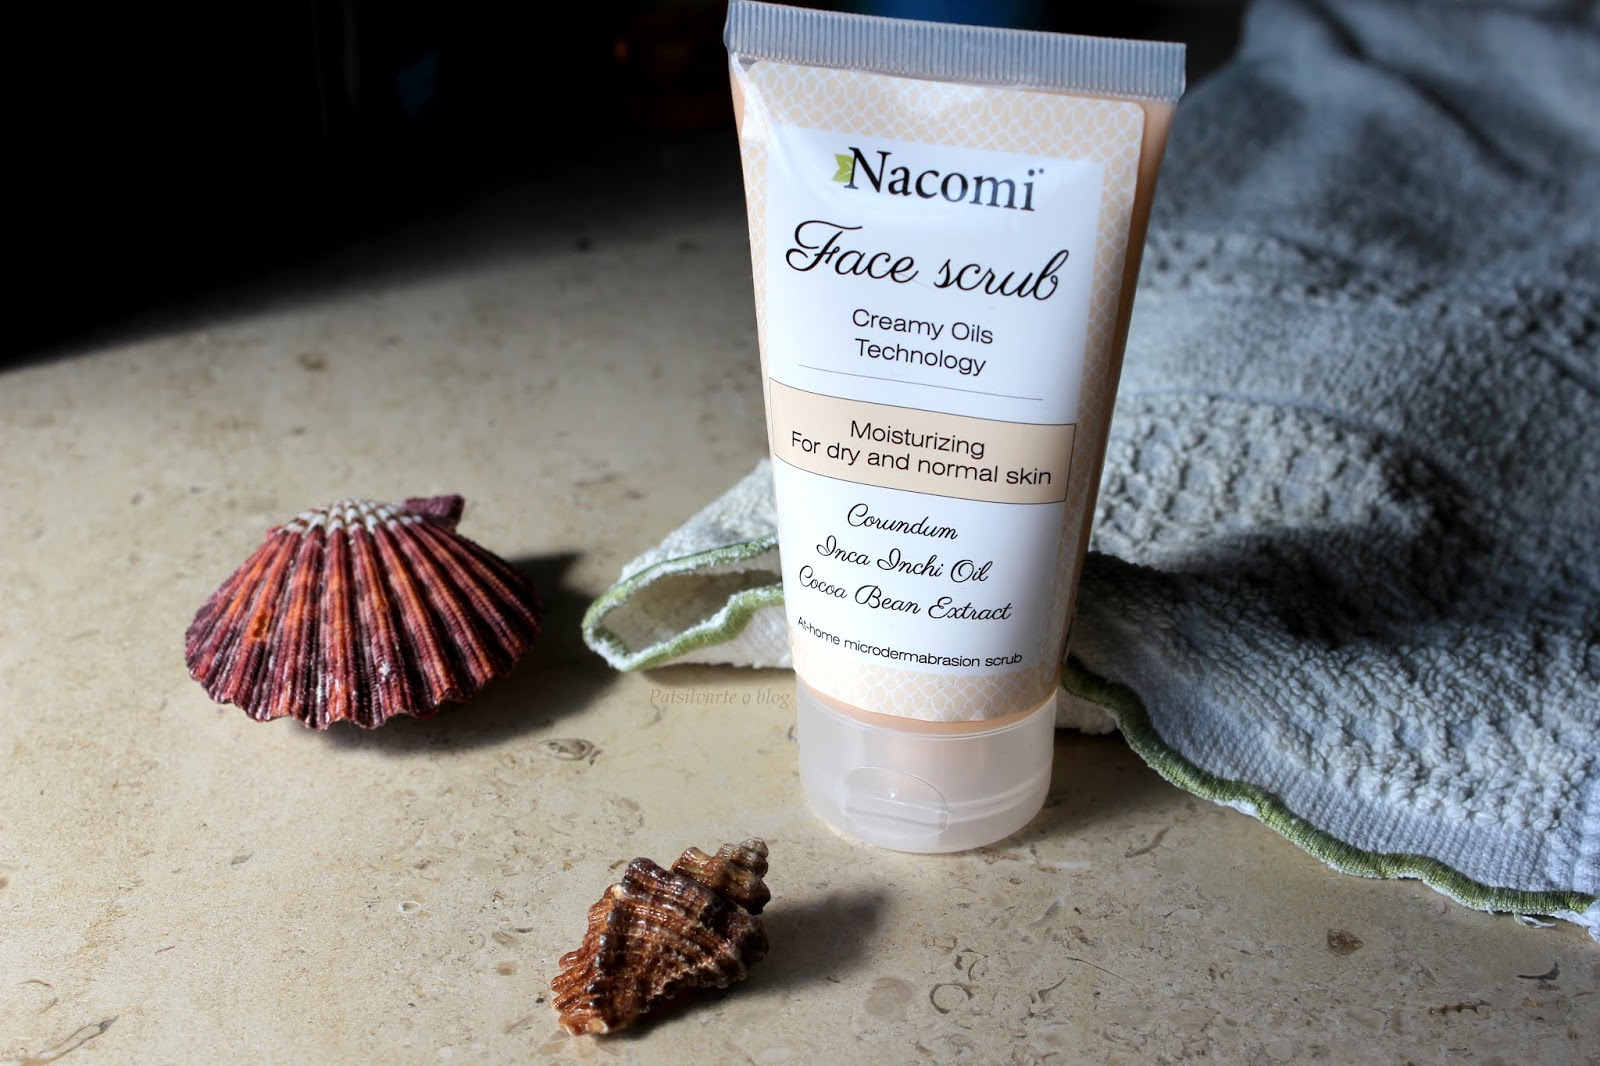 face scrub from nacomi full review